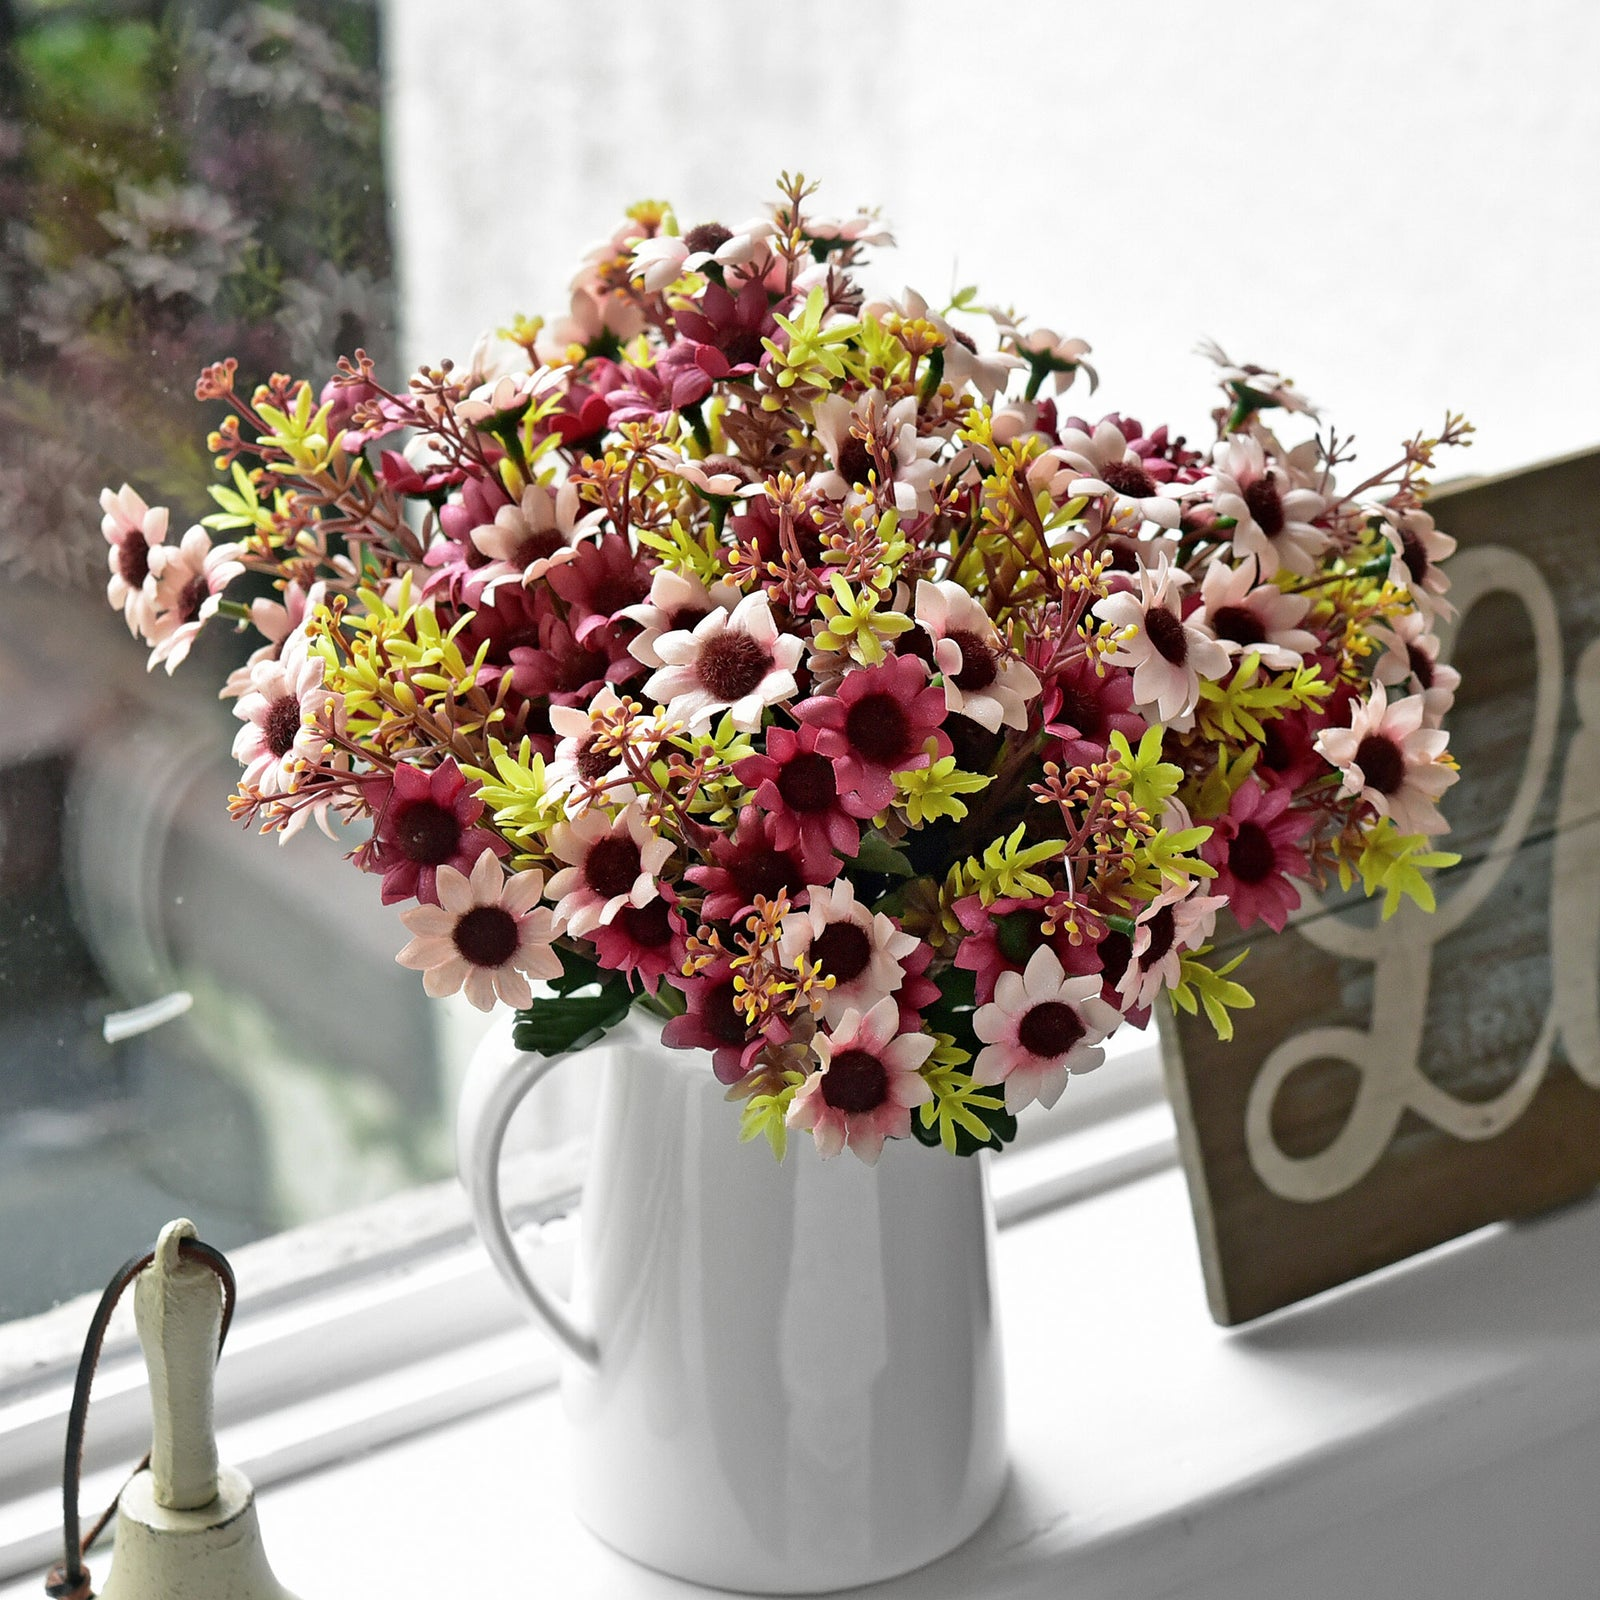 FiveSeasonStuff Daisy Silk Flowers, Outdoor Artificial Flowers Arrangement (4 Flower Bundles,) 13 inches Tall (Mixed Sweet Pinks)